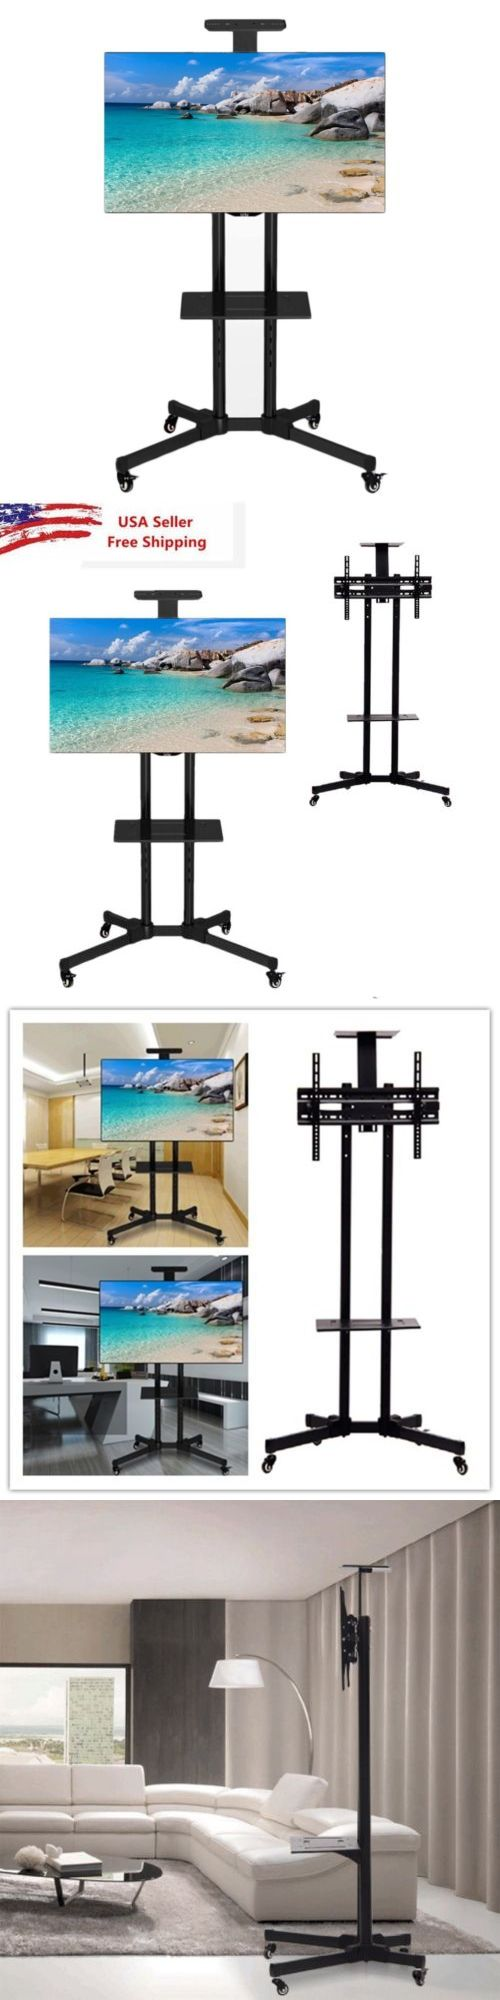 TV Mounts and Brackets: Tv Cart Lcd Led Plasma Flat Panels Mobile Stand Mount With Wheels Fits 25 - 65 BUY IT NOW ONLY: $67.0